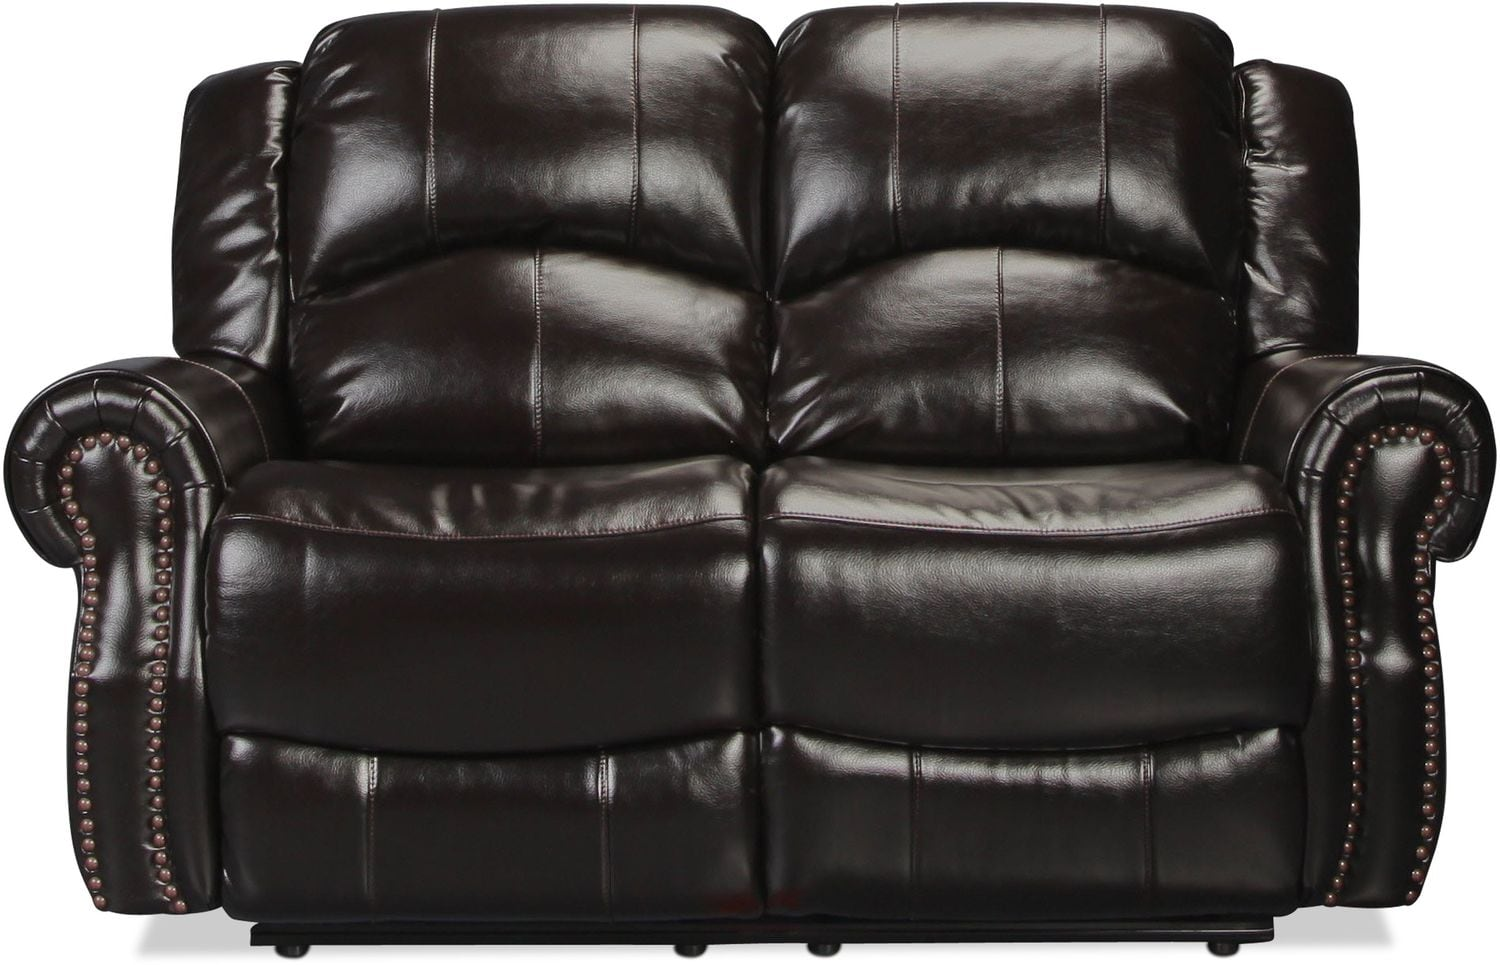 Banner Reclining Loveseat - Black Cherry